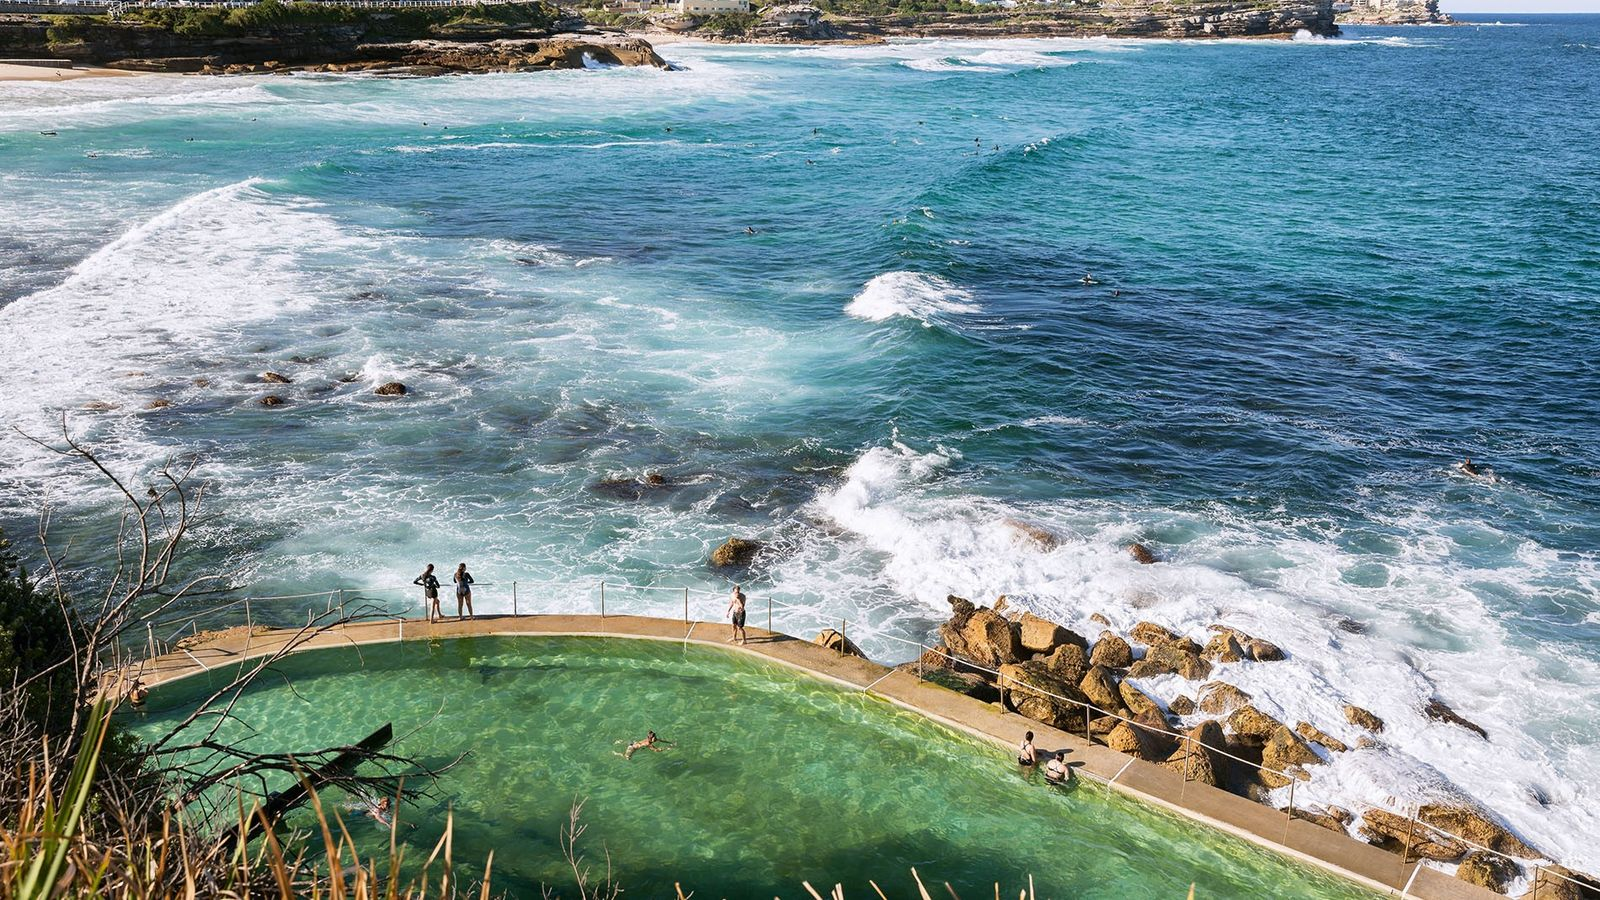 Overlooking bathers beside the green Bronte Ocean Pool, next to the blue ocean and crashing waves.